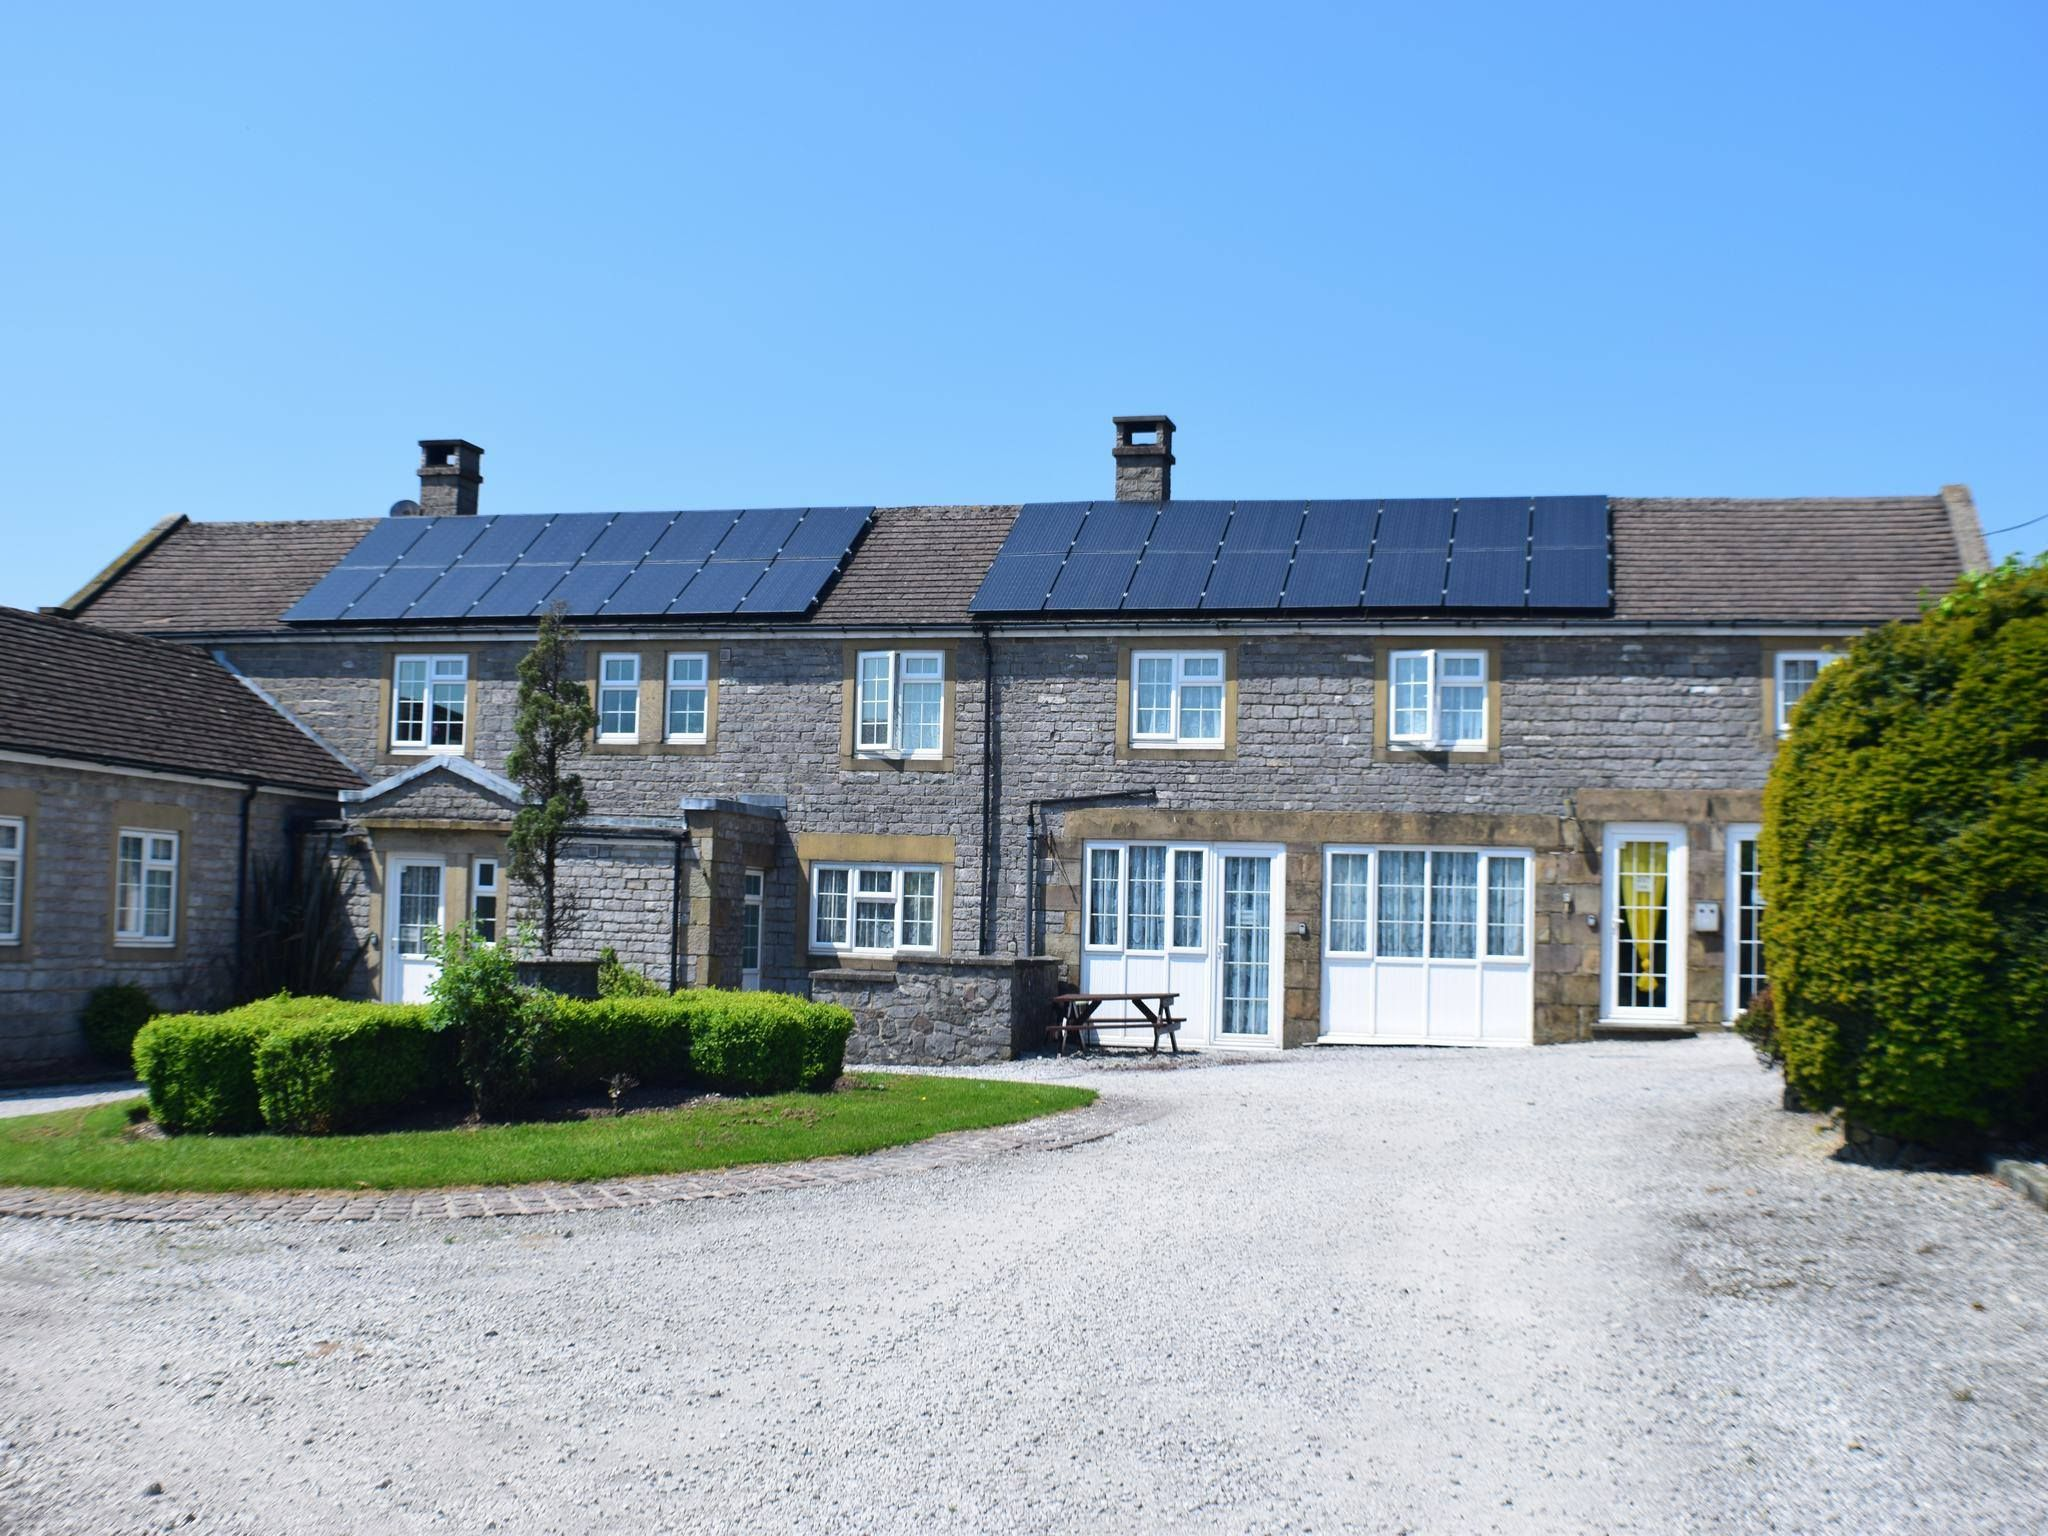 Paddock House Farm Holiday Cottages Alstonefield Ashbourne Derbyshire England Self Catering Accepts H Holiday Cottage Farm Holidays Pet Friendly Holidays